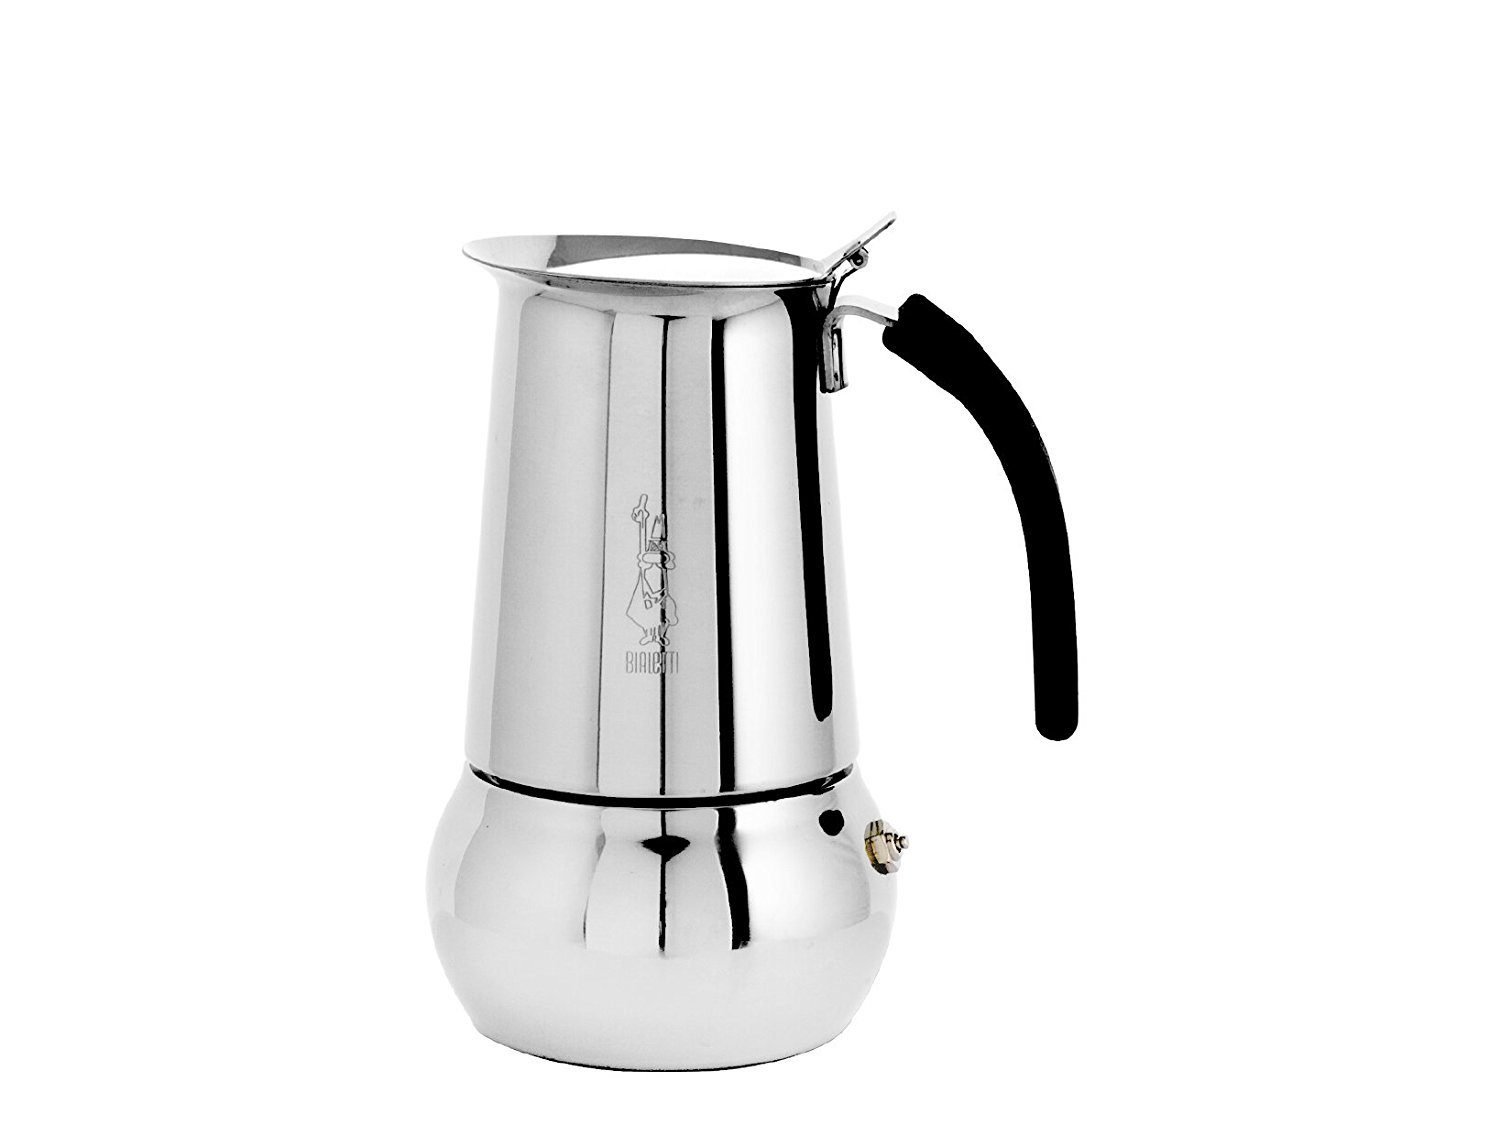 Bialetti 06661 Kitty Espresso Coffee Maker, Stainless Steel, 6 cup